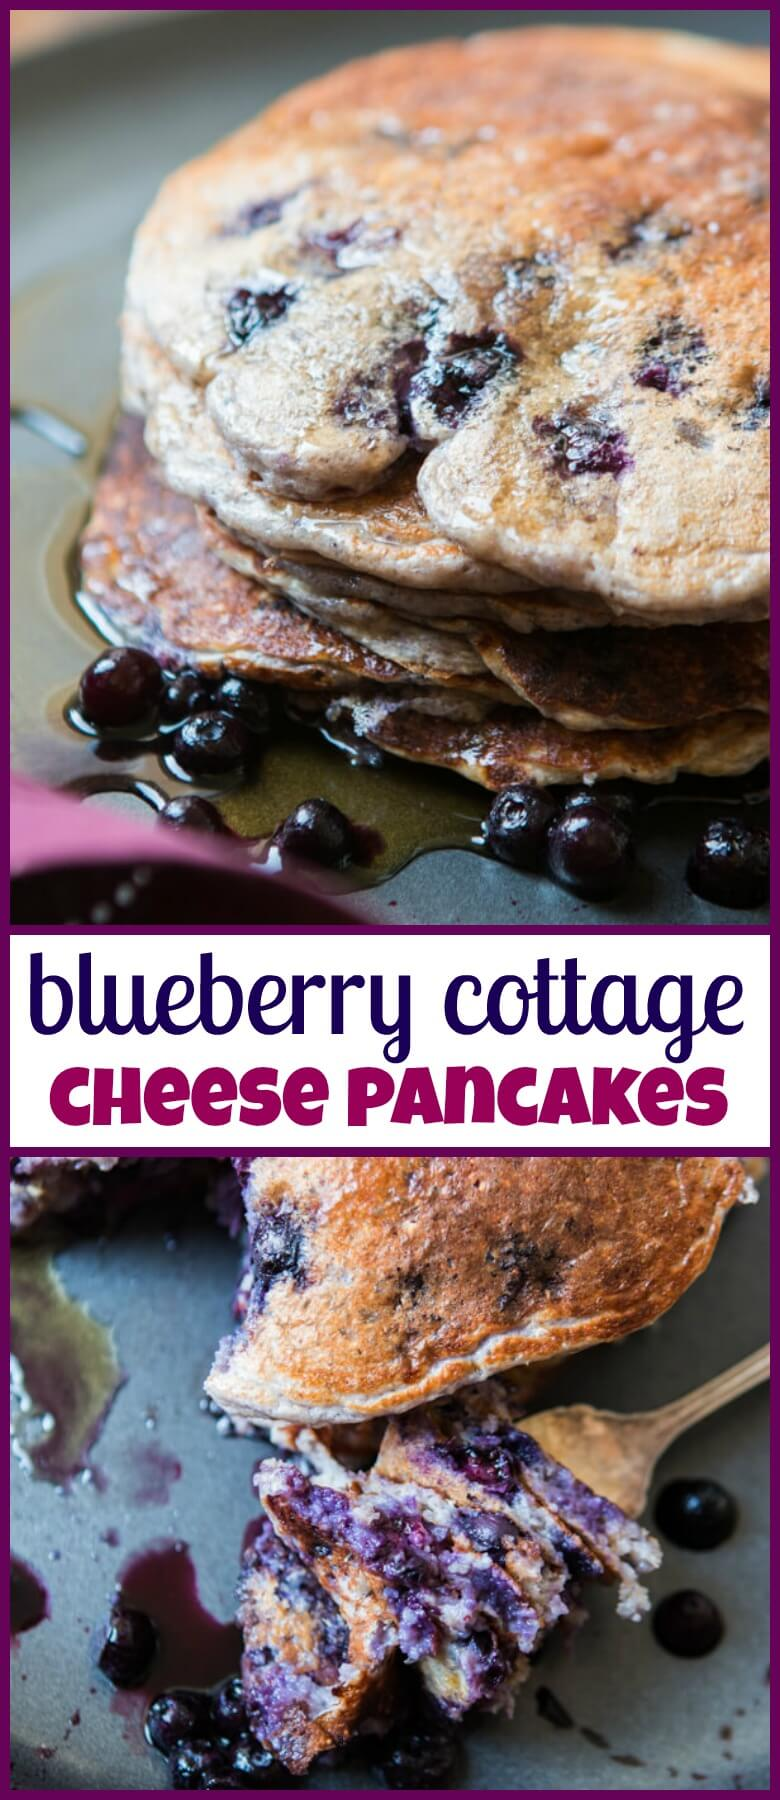 Sometimes you just need a big pile of pancakes and these healthy wild blueberry cottage cheese pancakes will fill your belly but not your waistline. gluten-free